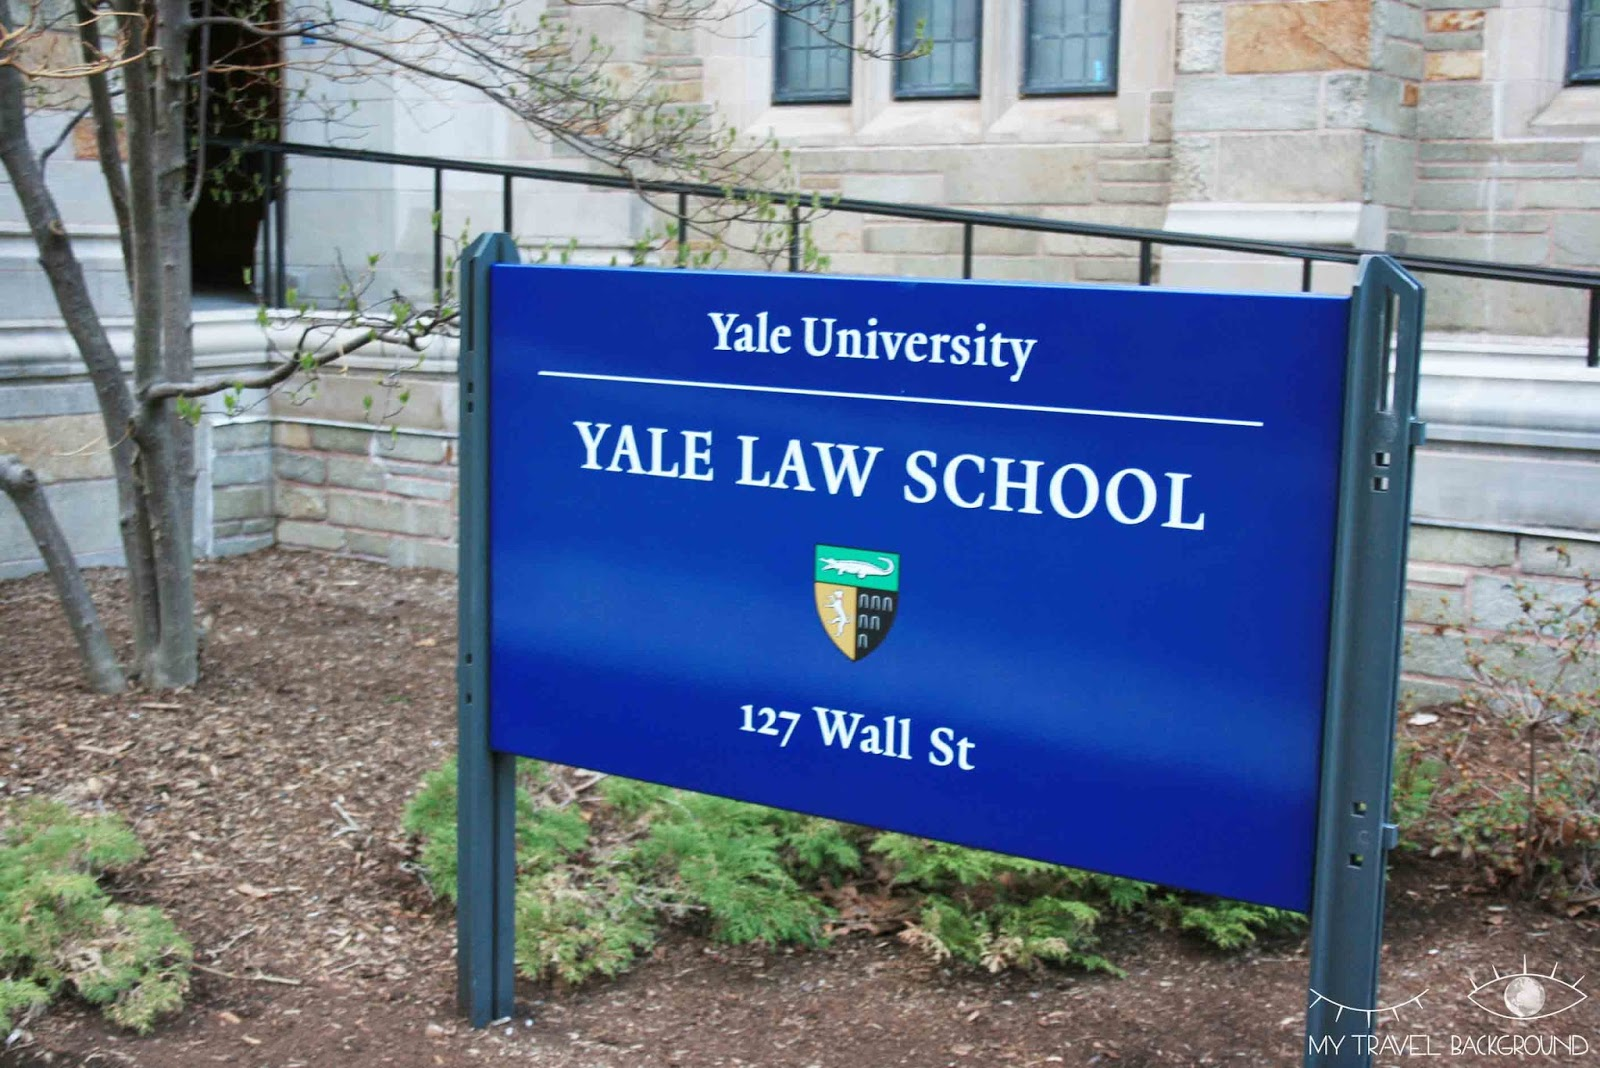 My Travel Background : Les principales universités américaines de la côte Nord-Est - Yale University